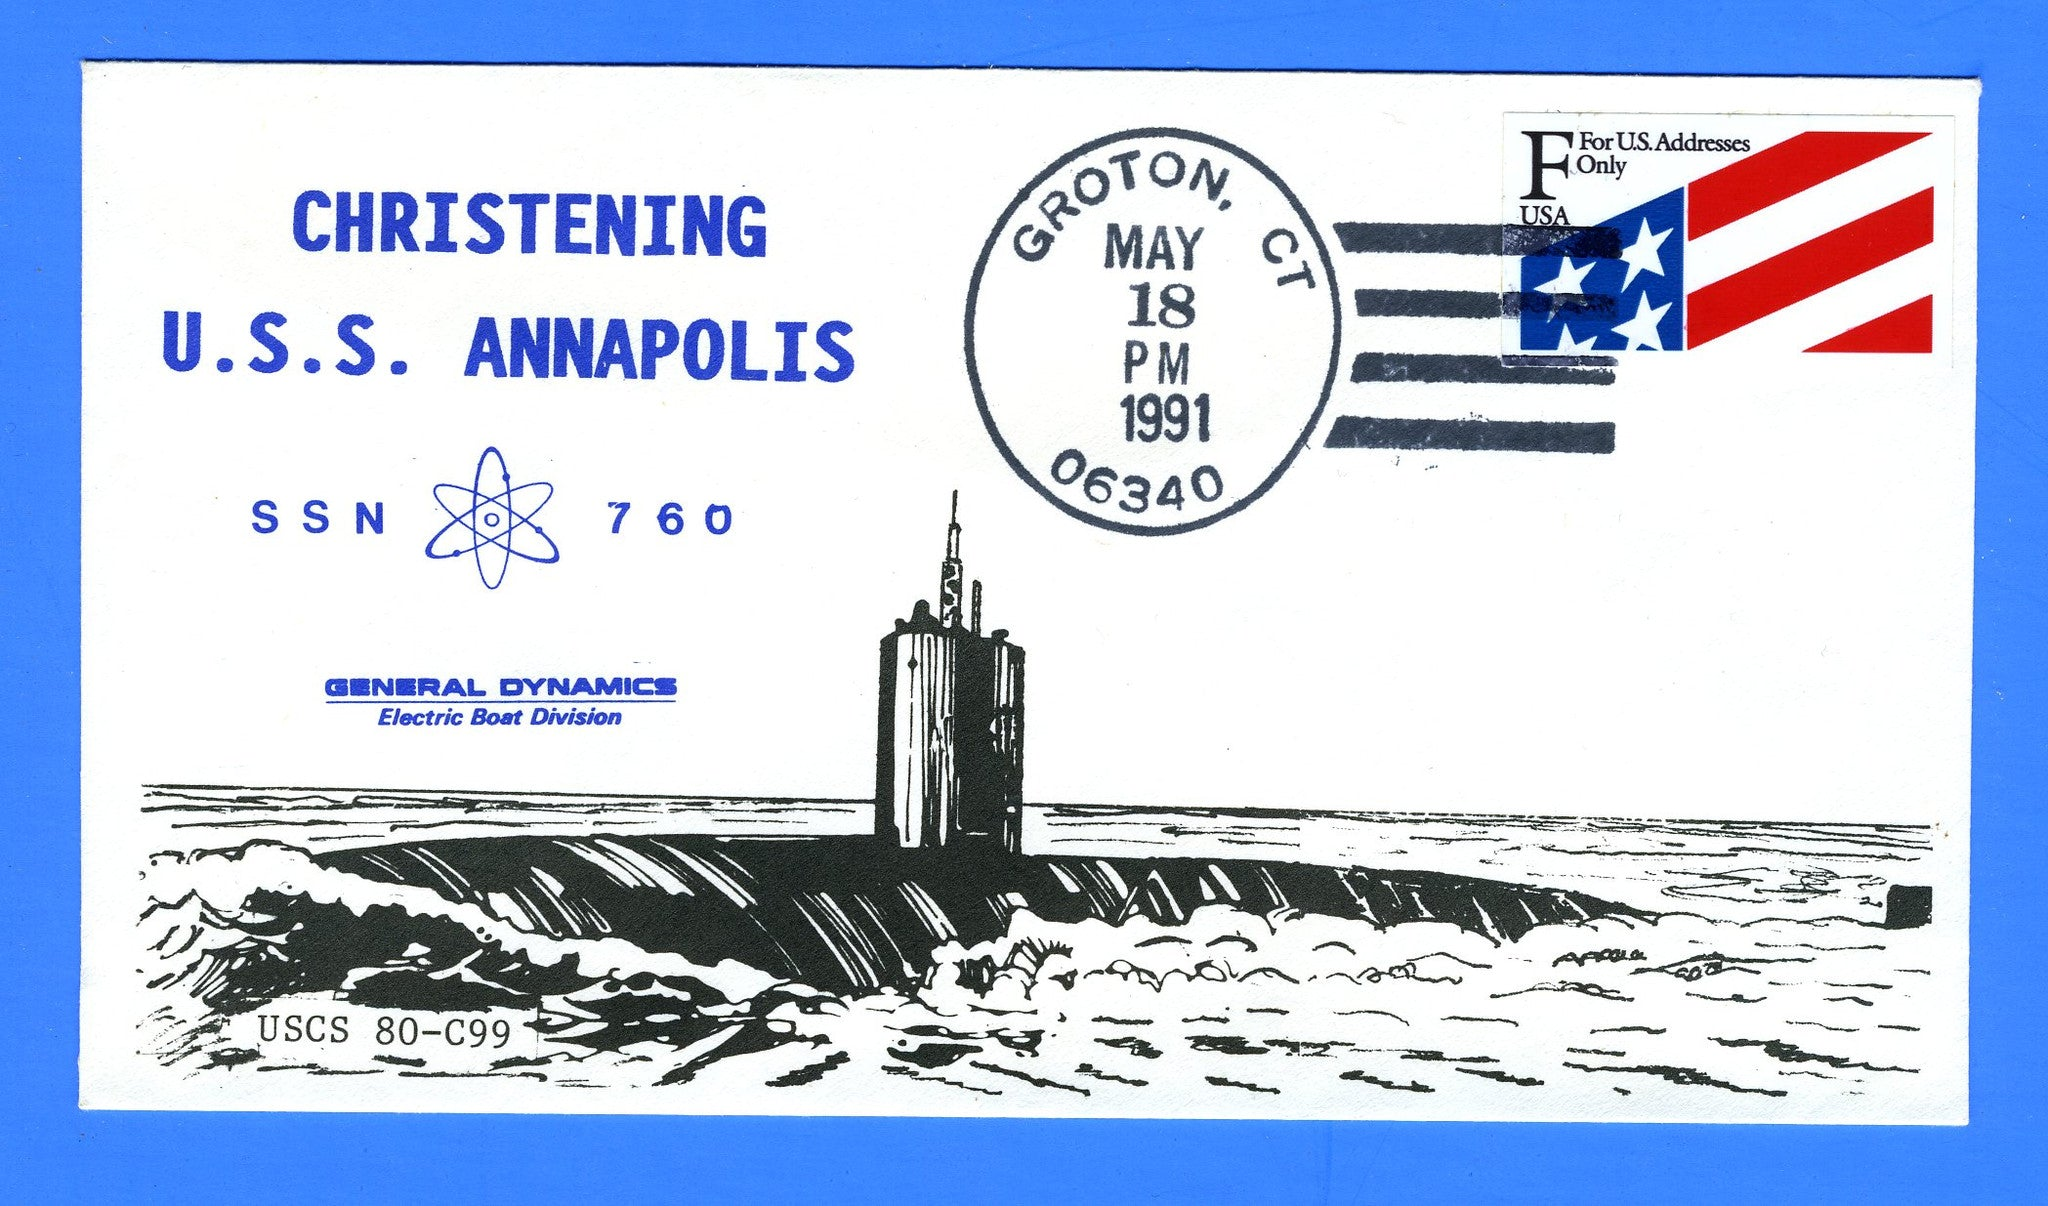 USS Annapolis SSN-760 Christening May 18, 1991